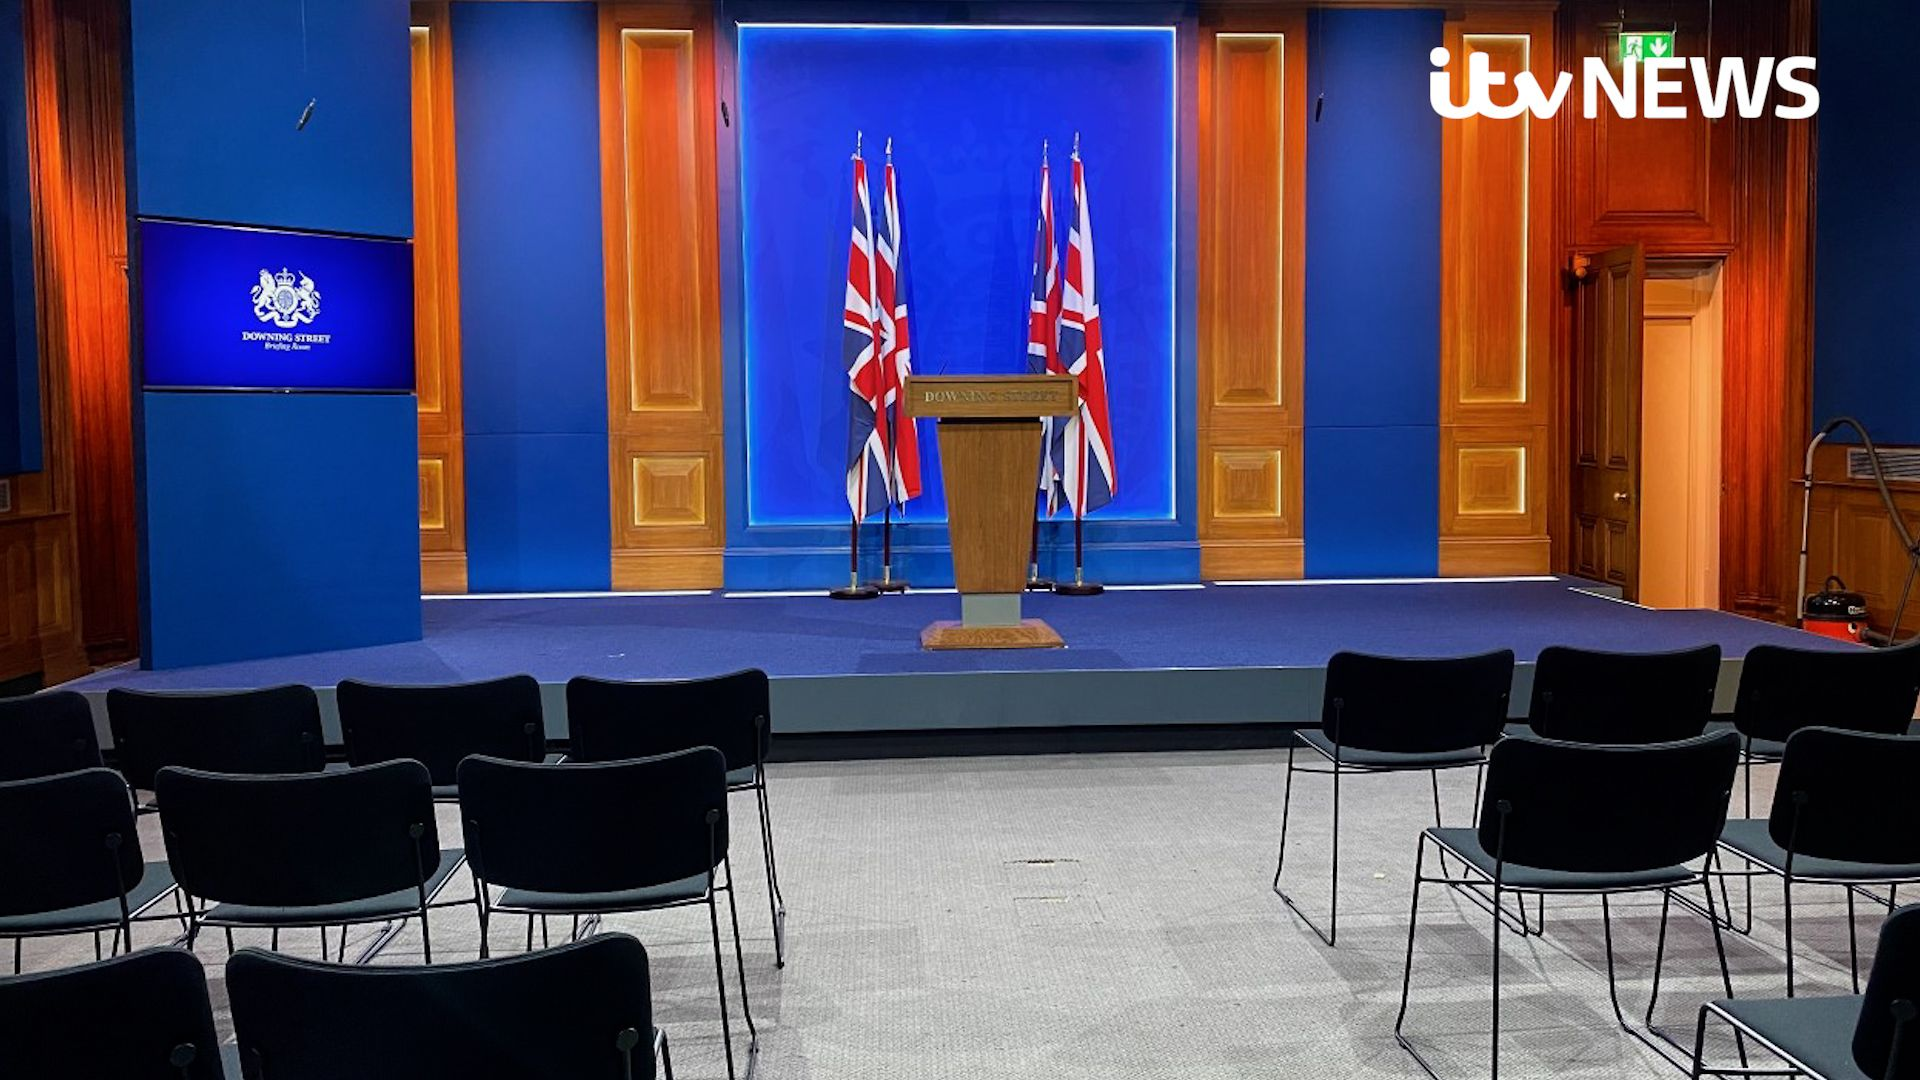 Downing Street's new White-House style media briefing room, following criticism that more than £2.6 million had been spent on the renovations - Credit: ITV News/PA Media